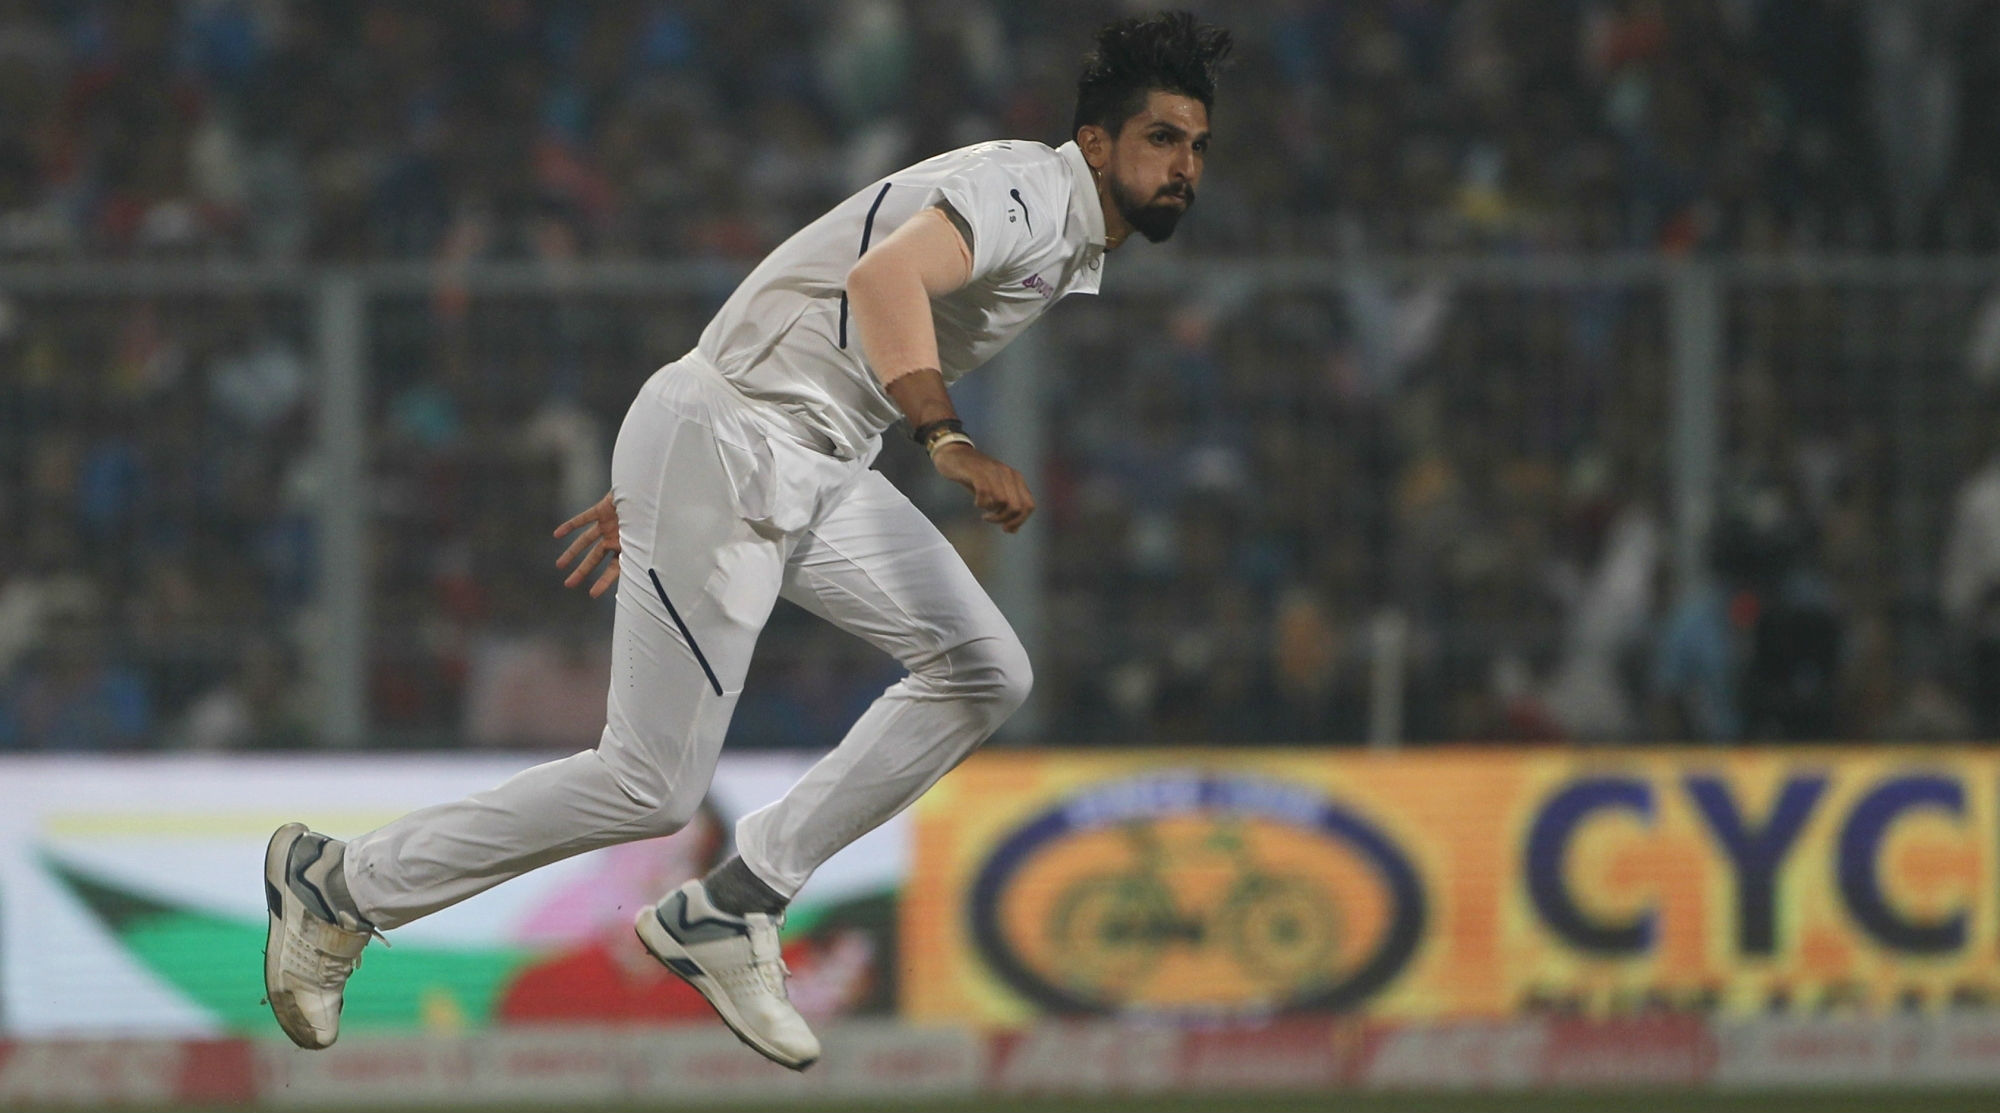 Ishant Sharma Likely to Miss Second Test Against New Zealand Due to Recurrence of Ankle Injury